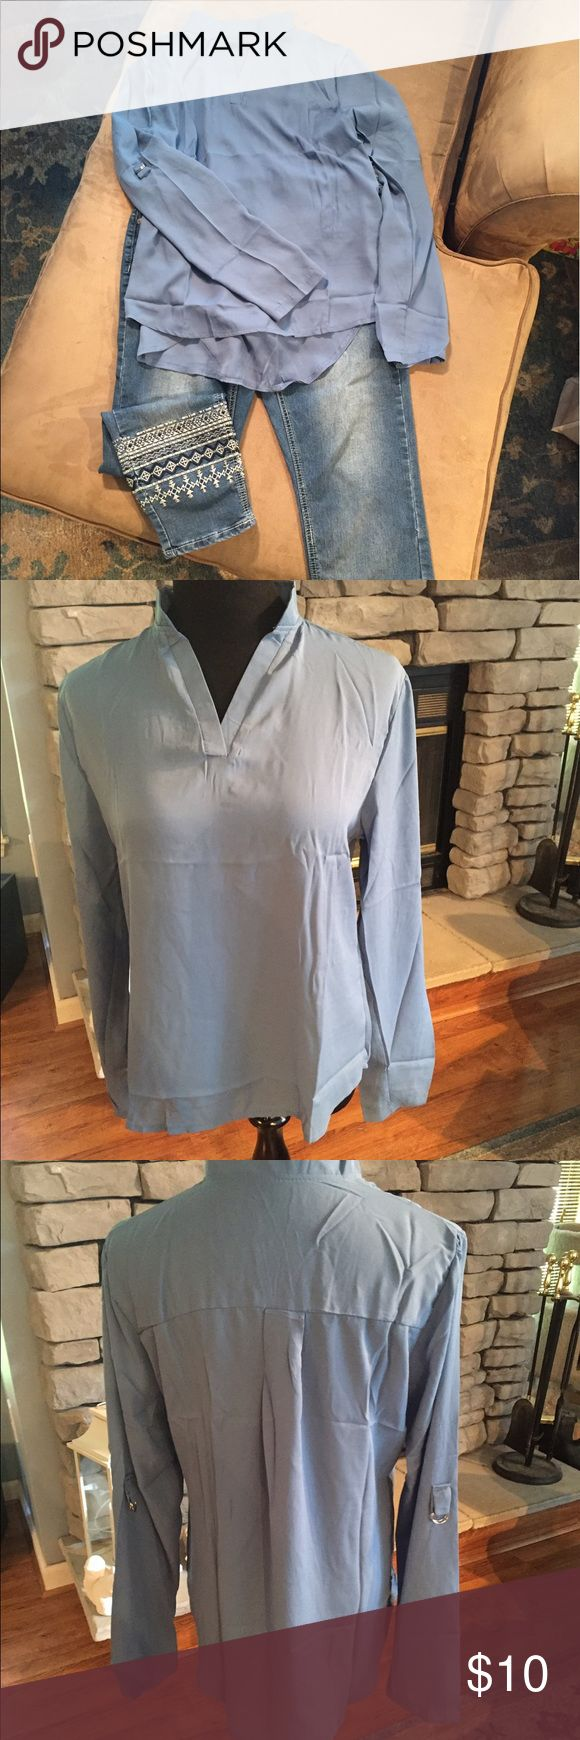 "Hi Lo Blouse with Roll Up Sleeves Dress it up or go casual with jeans, this versatile Blouse is super comfortable. Nice, light polyester material. Features double ring loop on side of sleeves to allow for rolling up and staying put. Pretty dusty blue color. Medium measures 36"" bust. Tops Blouses"